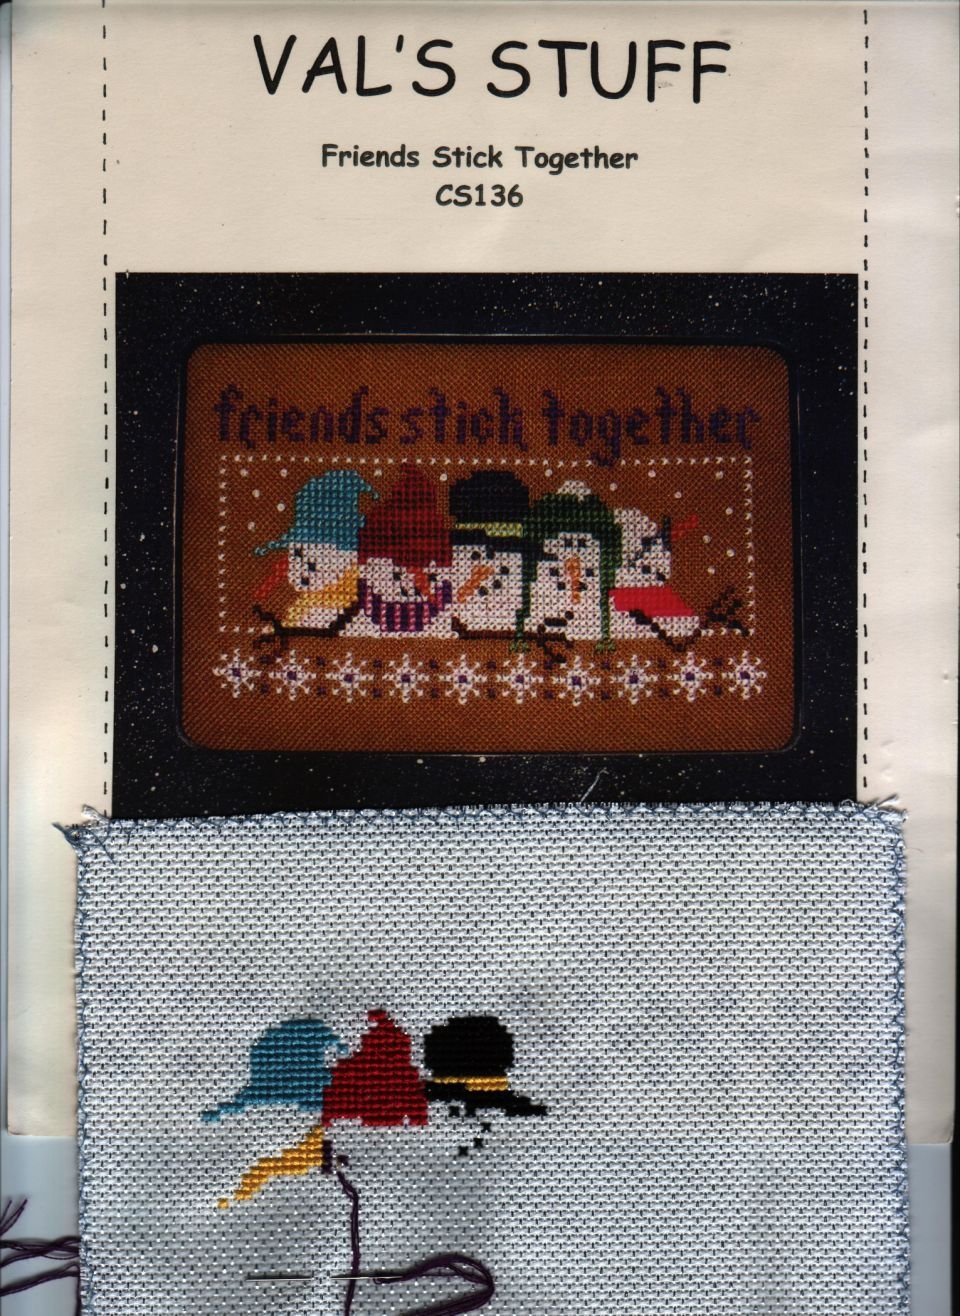 Friends Stick Together By Val's Stuffusing DMC floss on 14 count